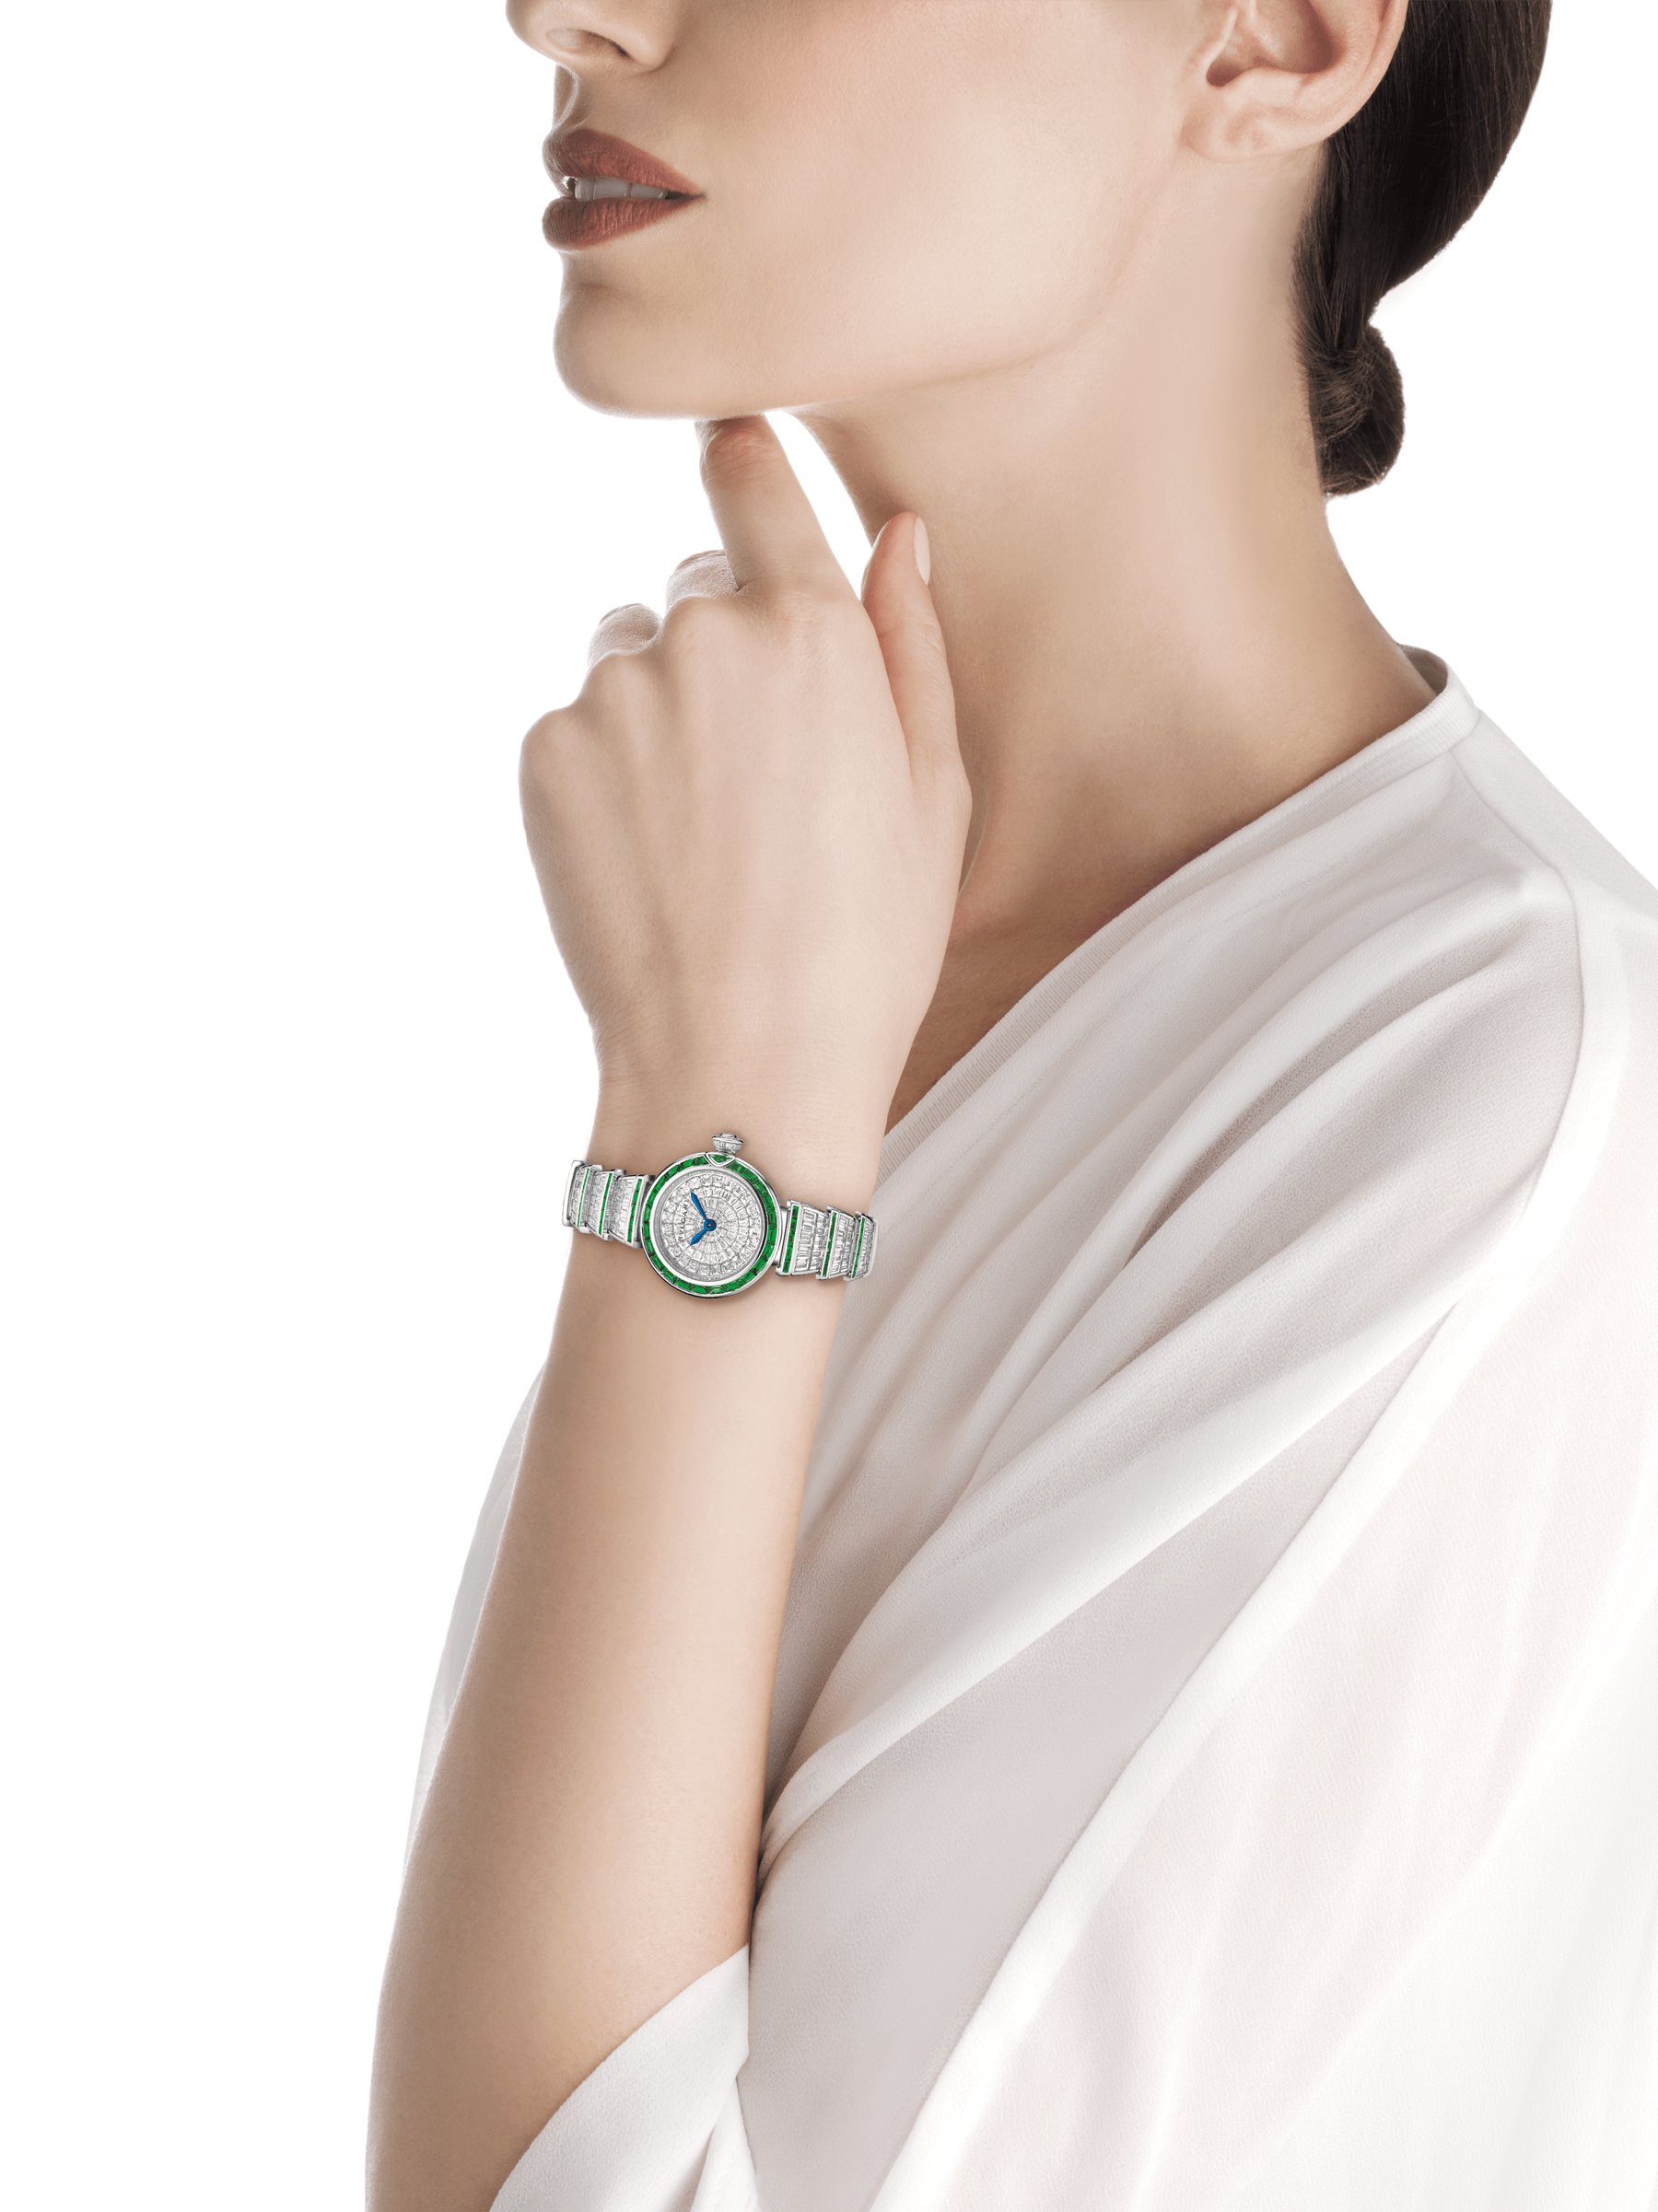 LVCEA watch in 18kt white gold case and bracelet, both set with baguette diamonds and emeralds and full diamond dial. 102466 image 4